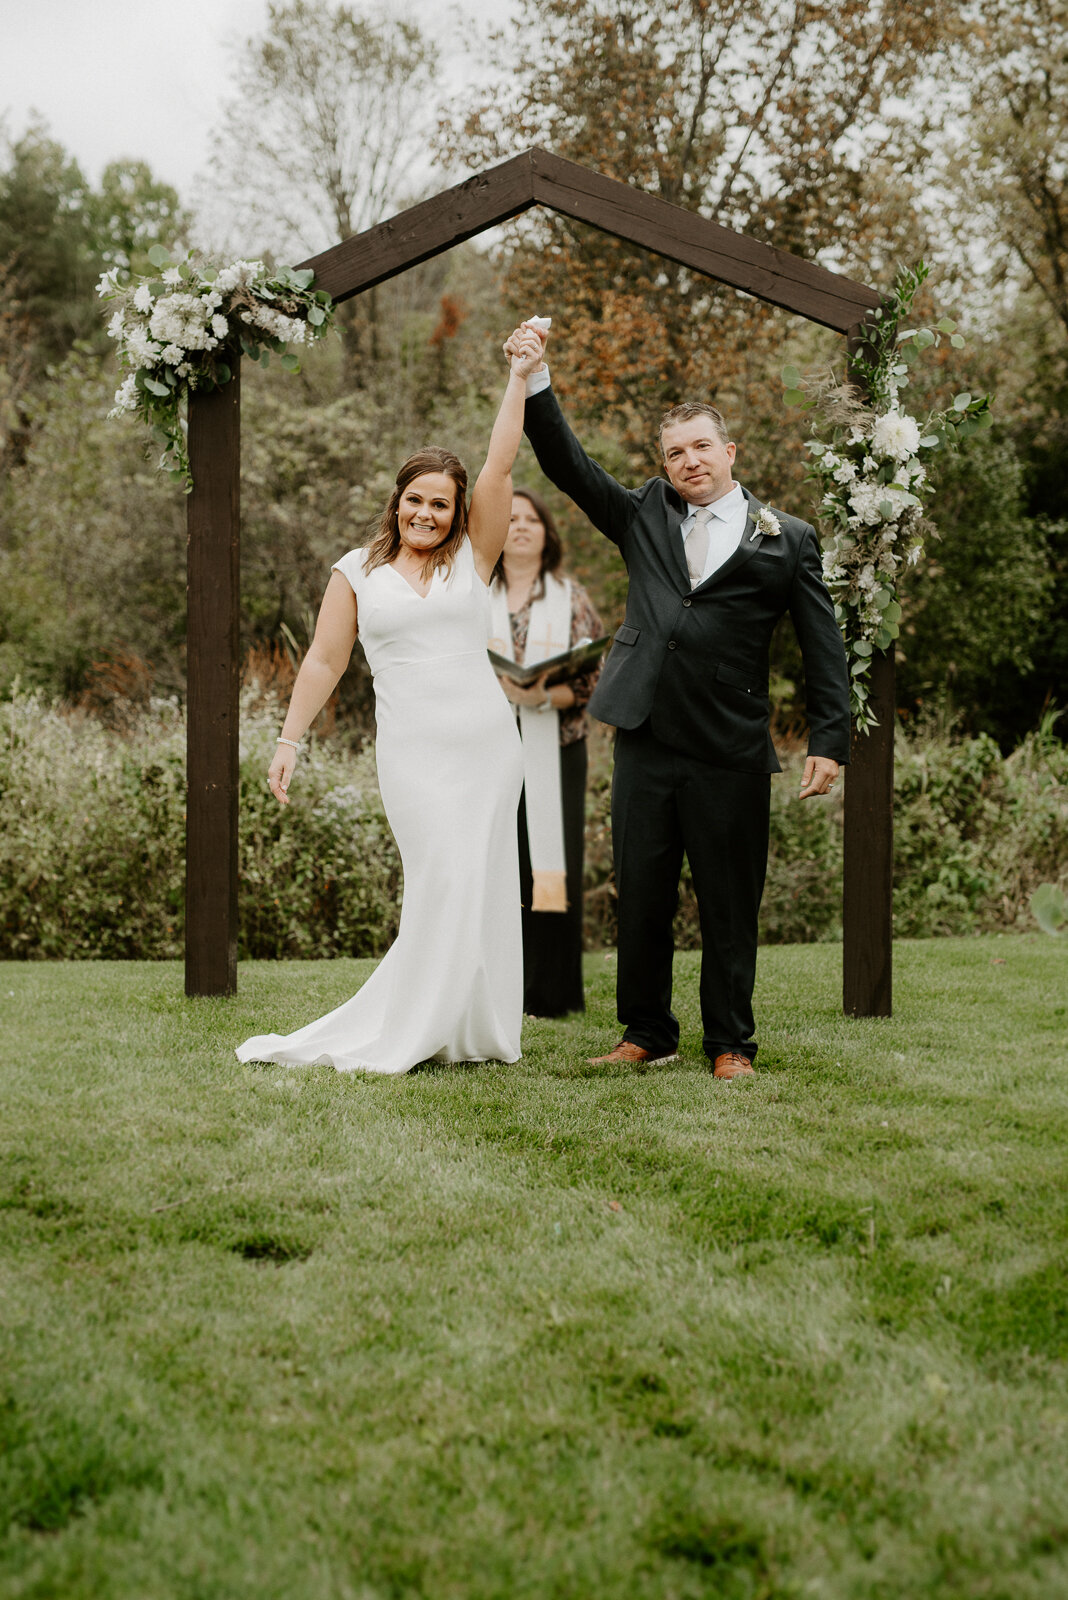 8 Unique Wedding Venues in Southeast Michigan that outdoor lovers ...